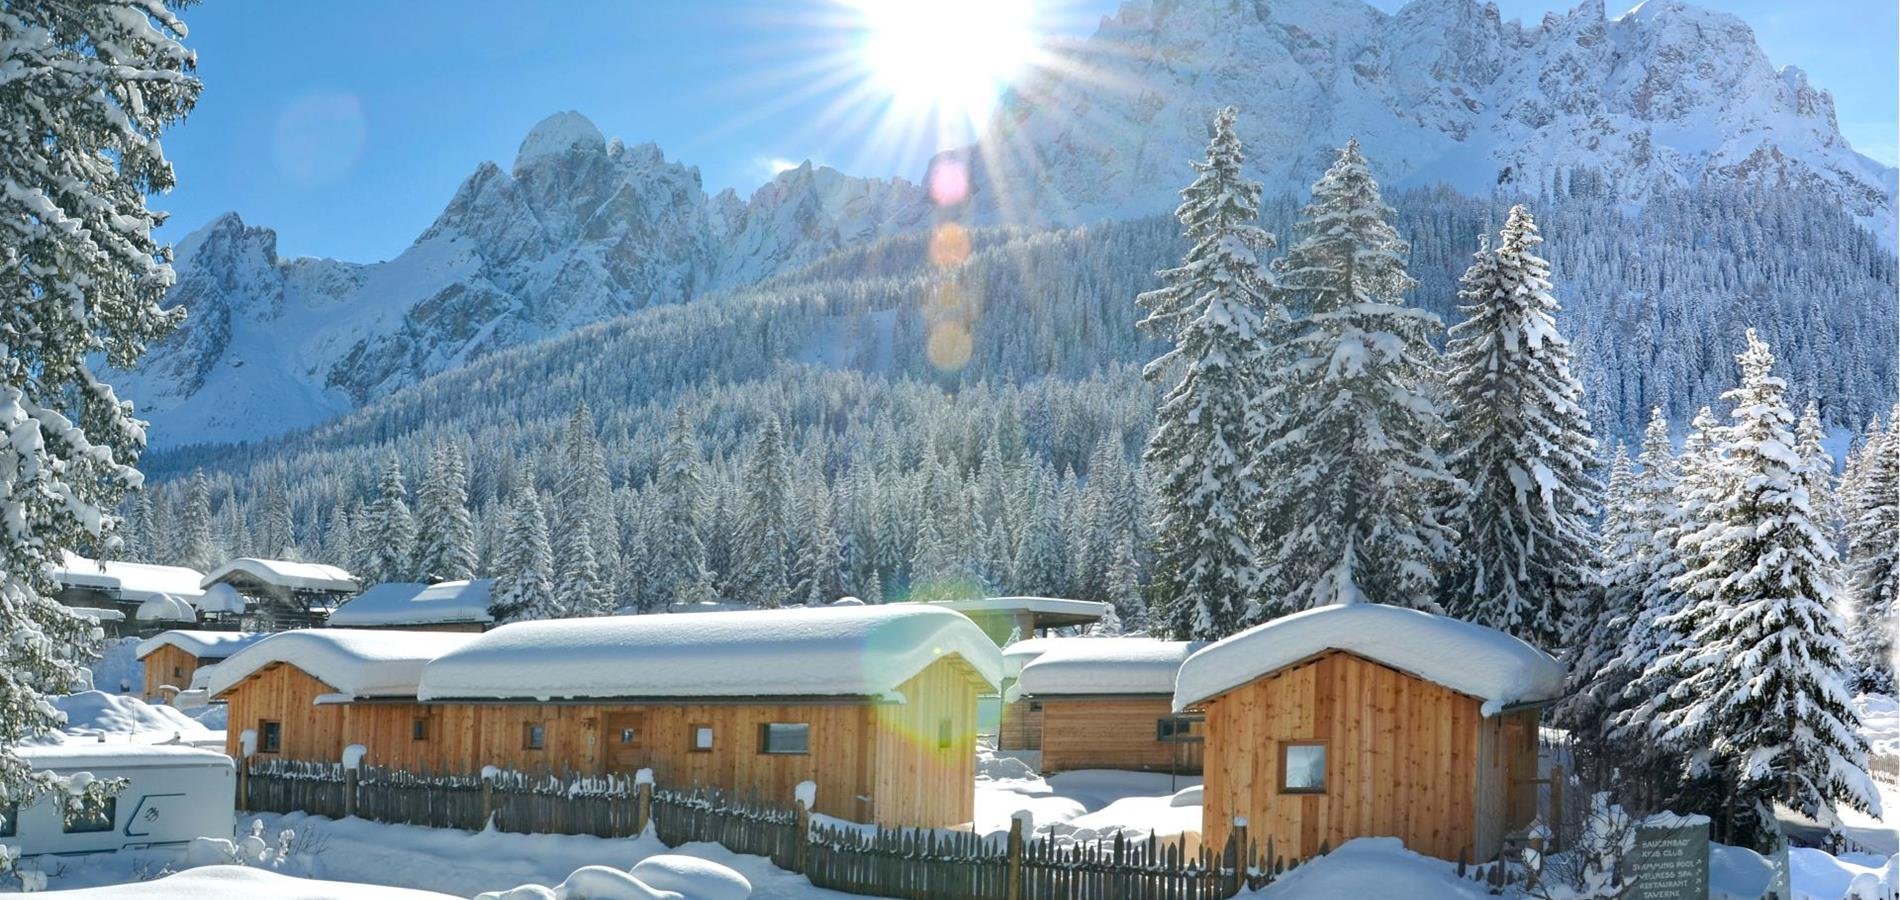 caravanparksexten-lodge-aussen-winter-0001